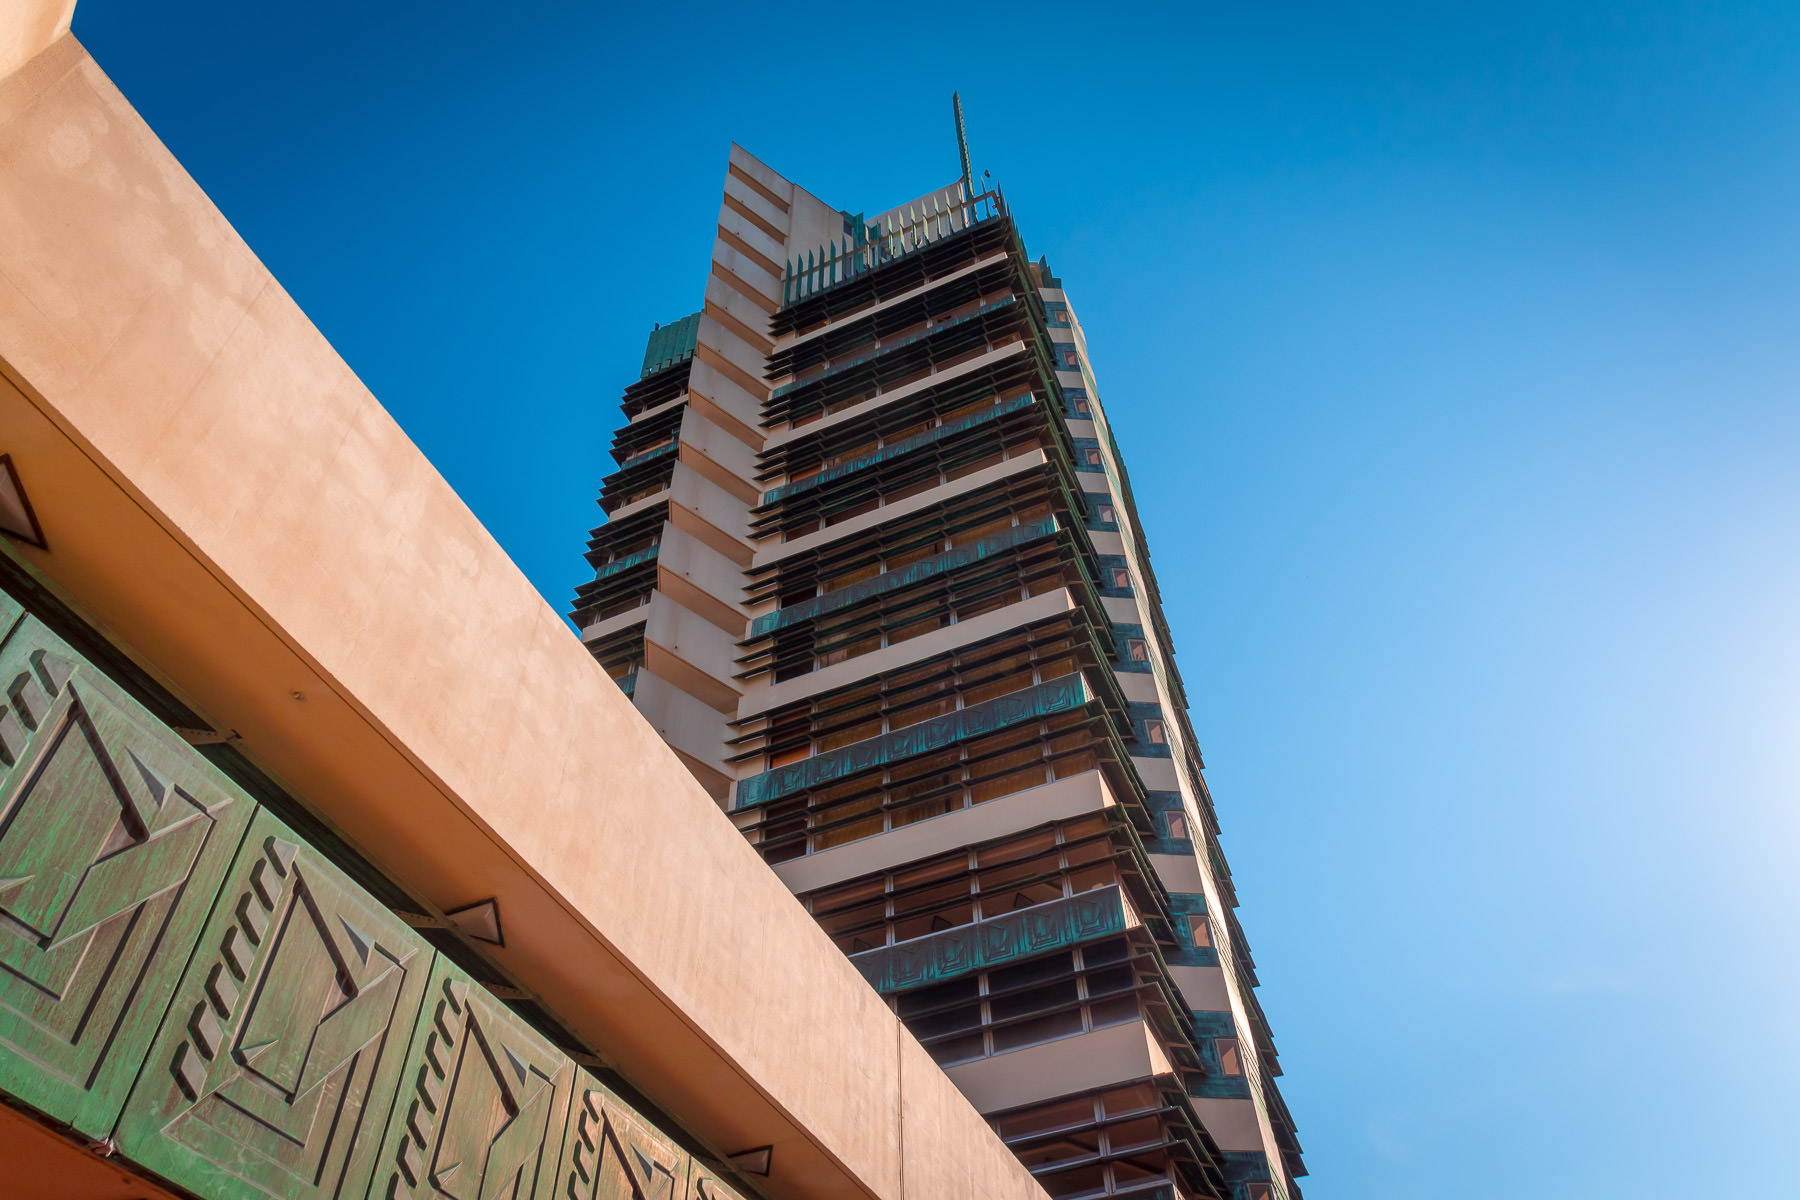 The Frank Lloyd Wright-designed Price Tower rises into the blue sky over Bartlesville, Oklahoma.